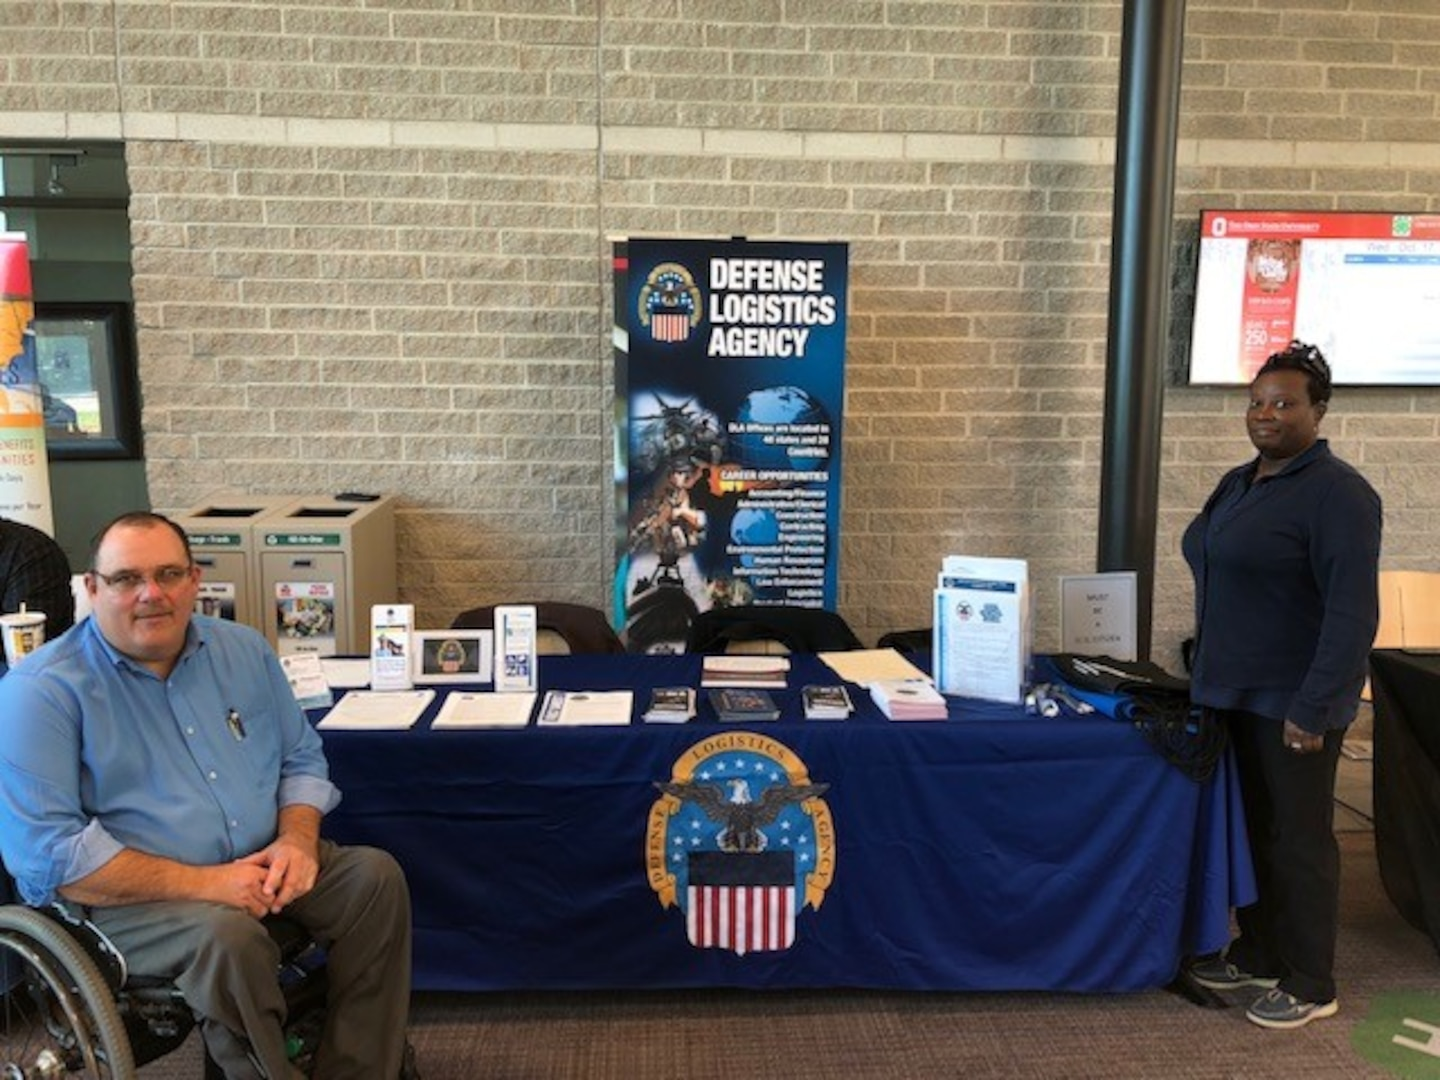 DLA Land and Maritime Recruitment booth at Opportunities for Ohioans with Disabilities